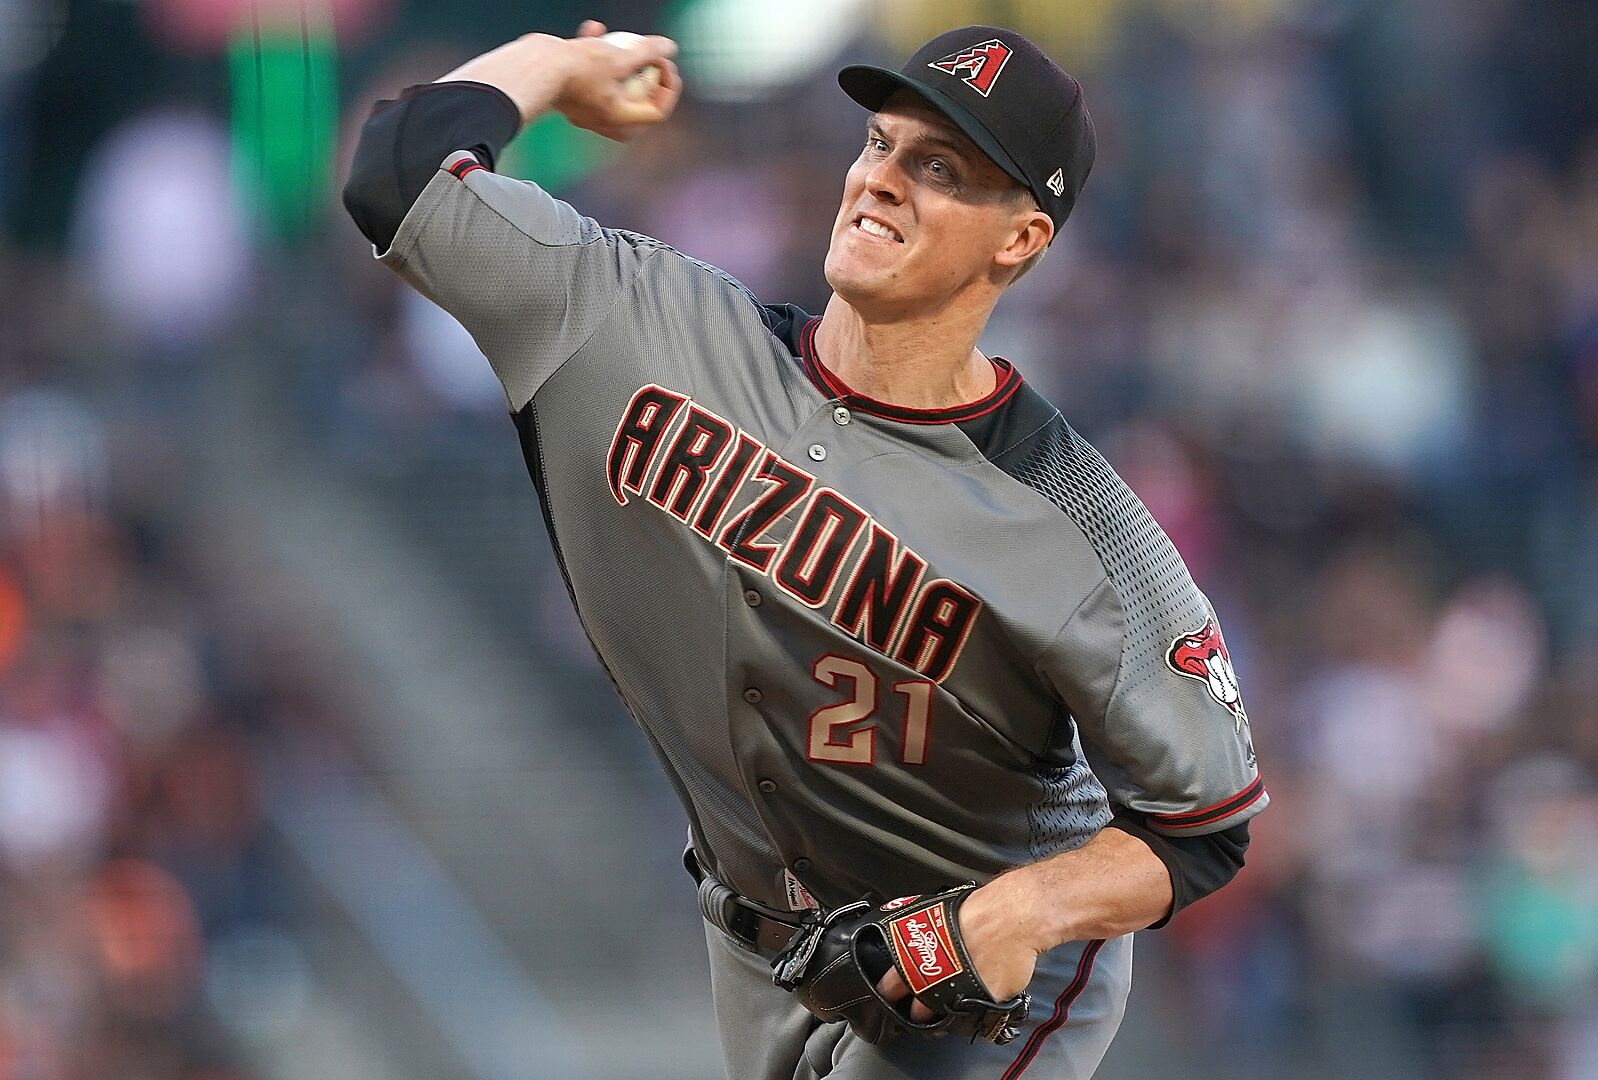 How could the Atlanta Braves acquire Zack Greinke at the